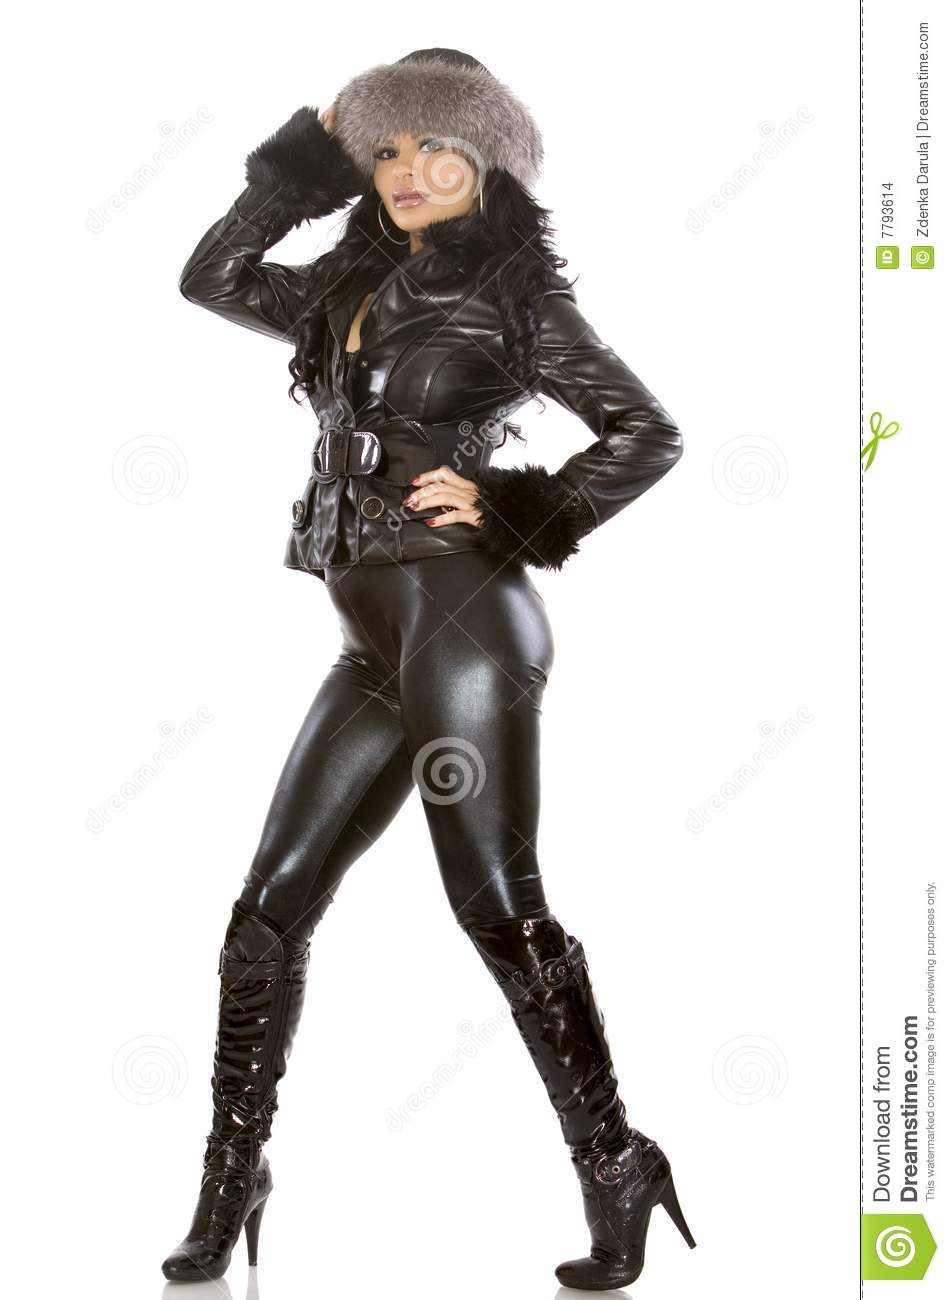 Pretty model wearing leather outfit on white background.